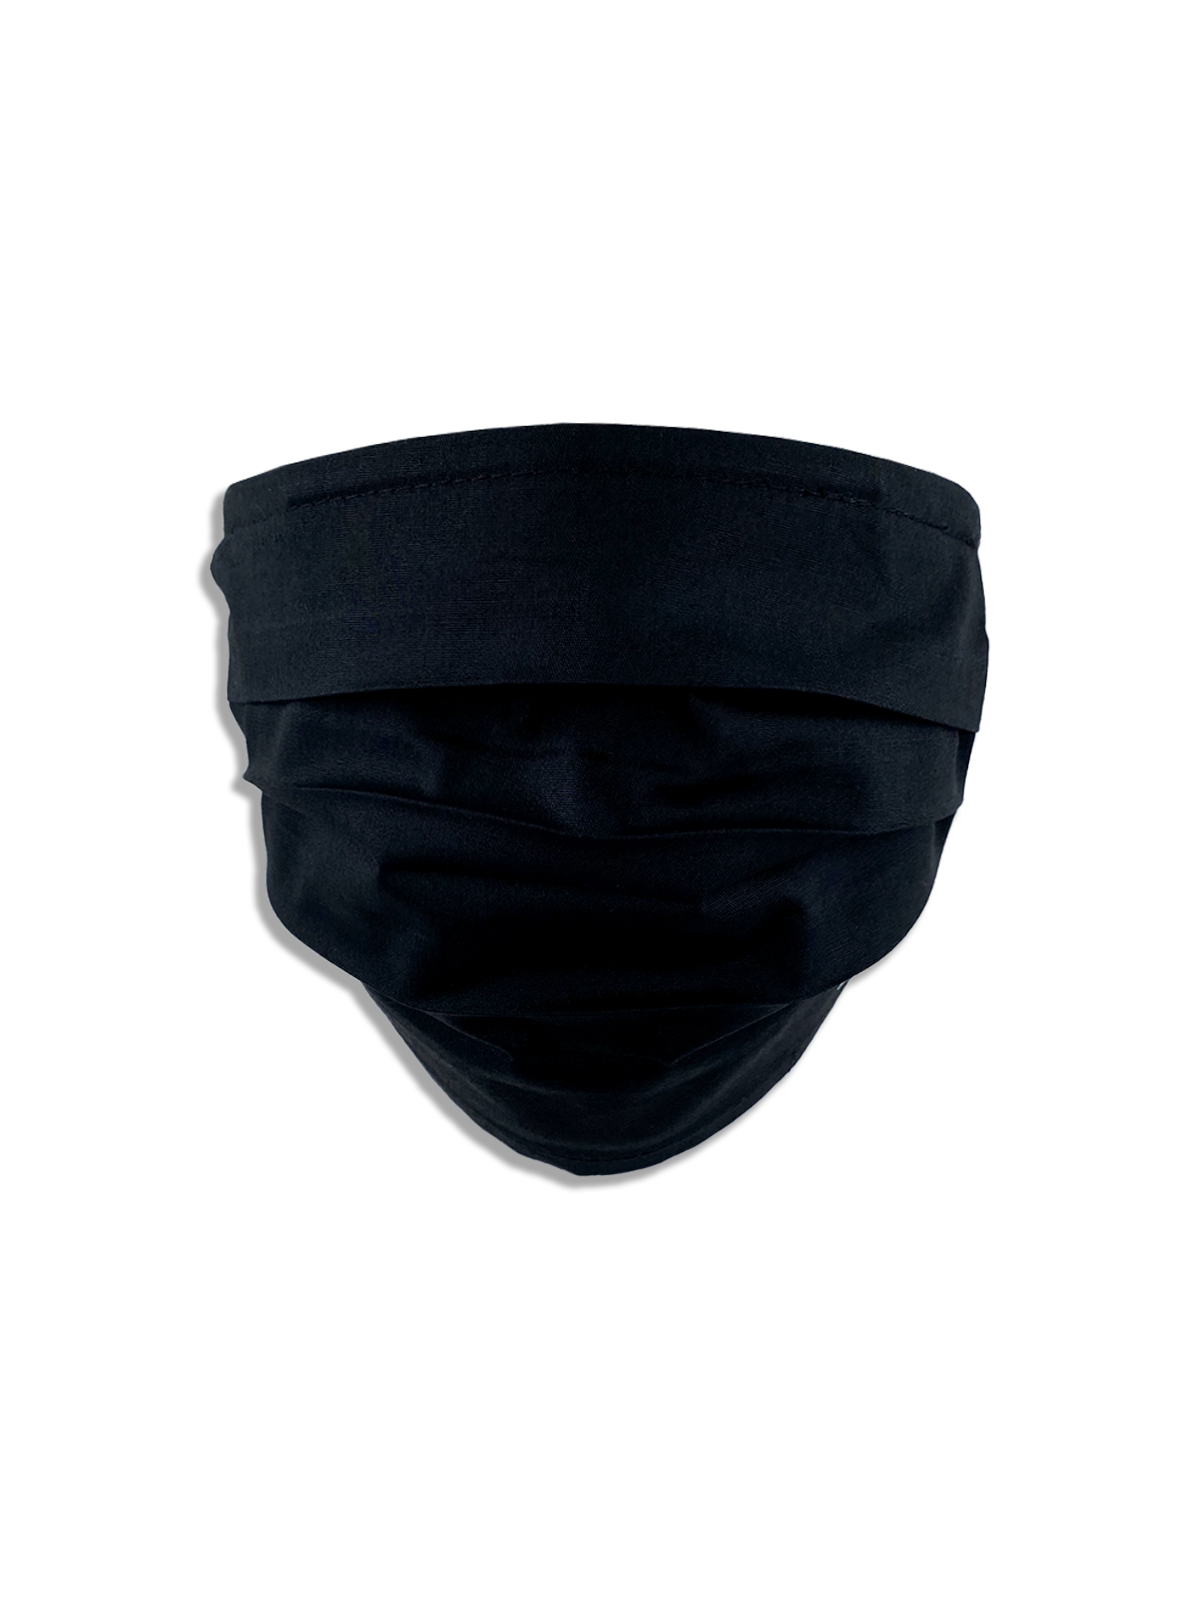 KIDS SOLID PLEATED MASK 1-PACK